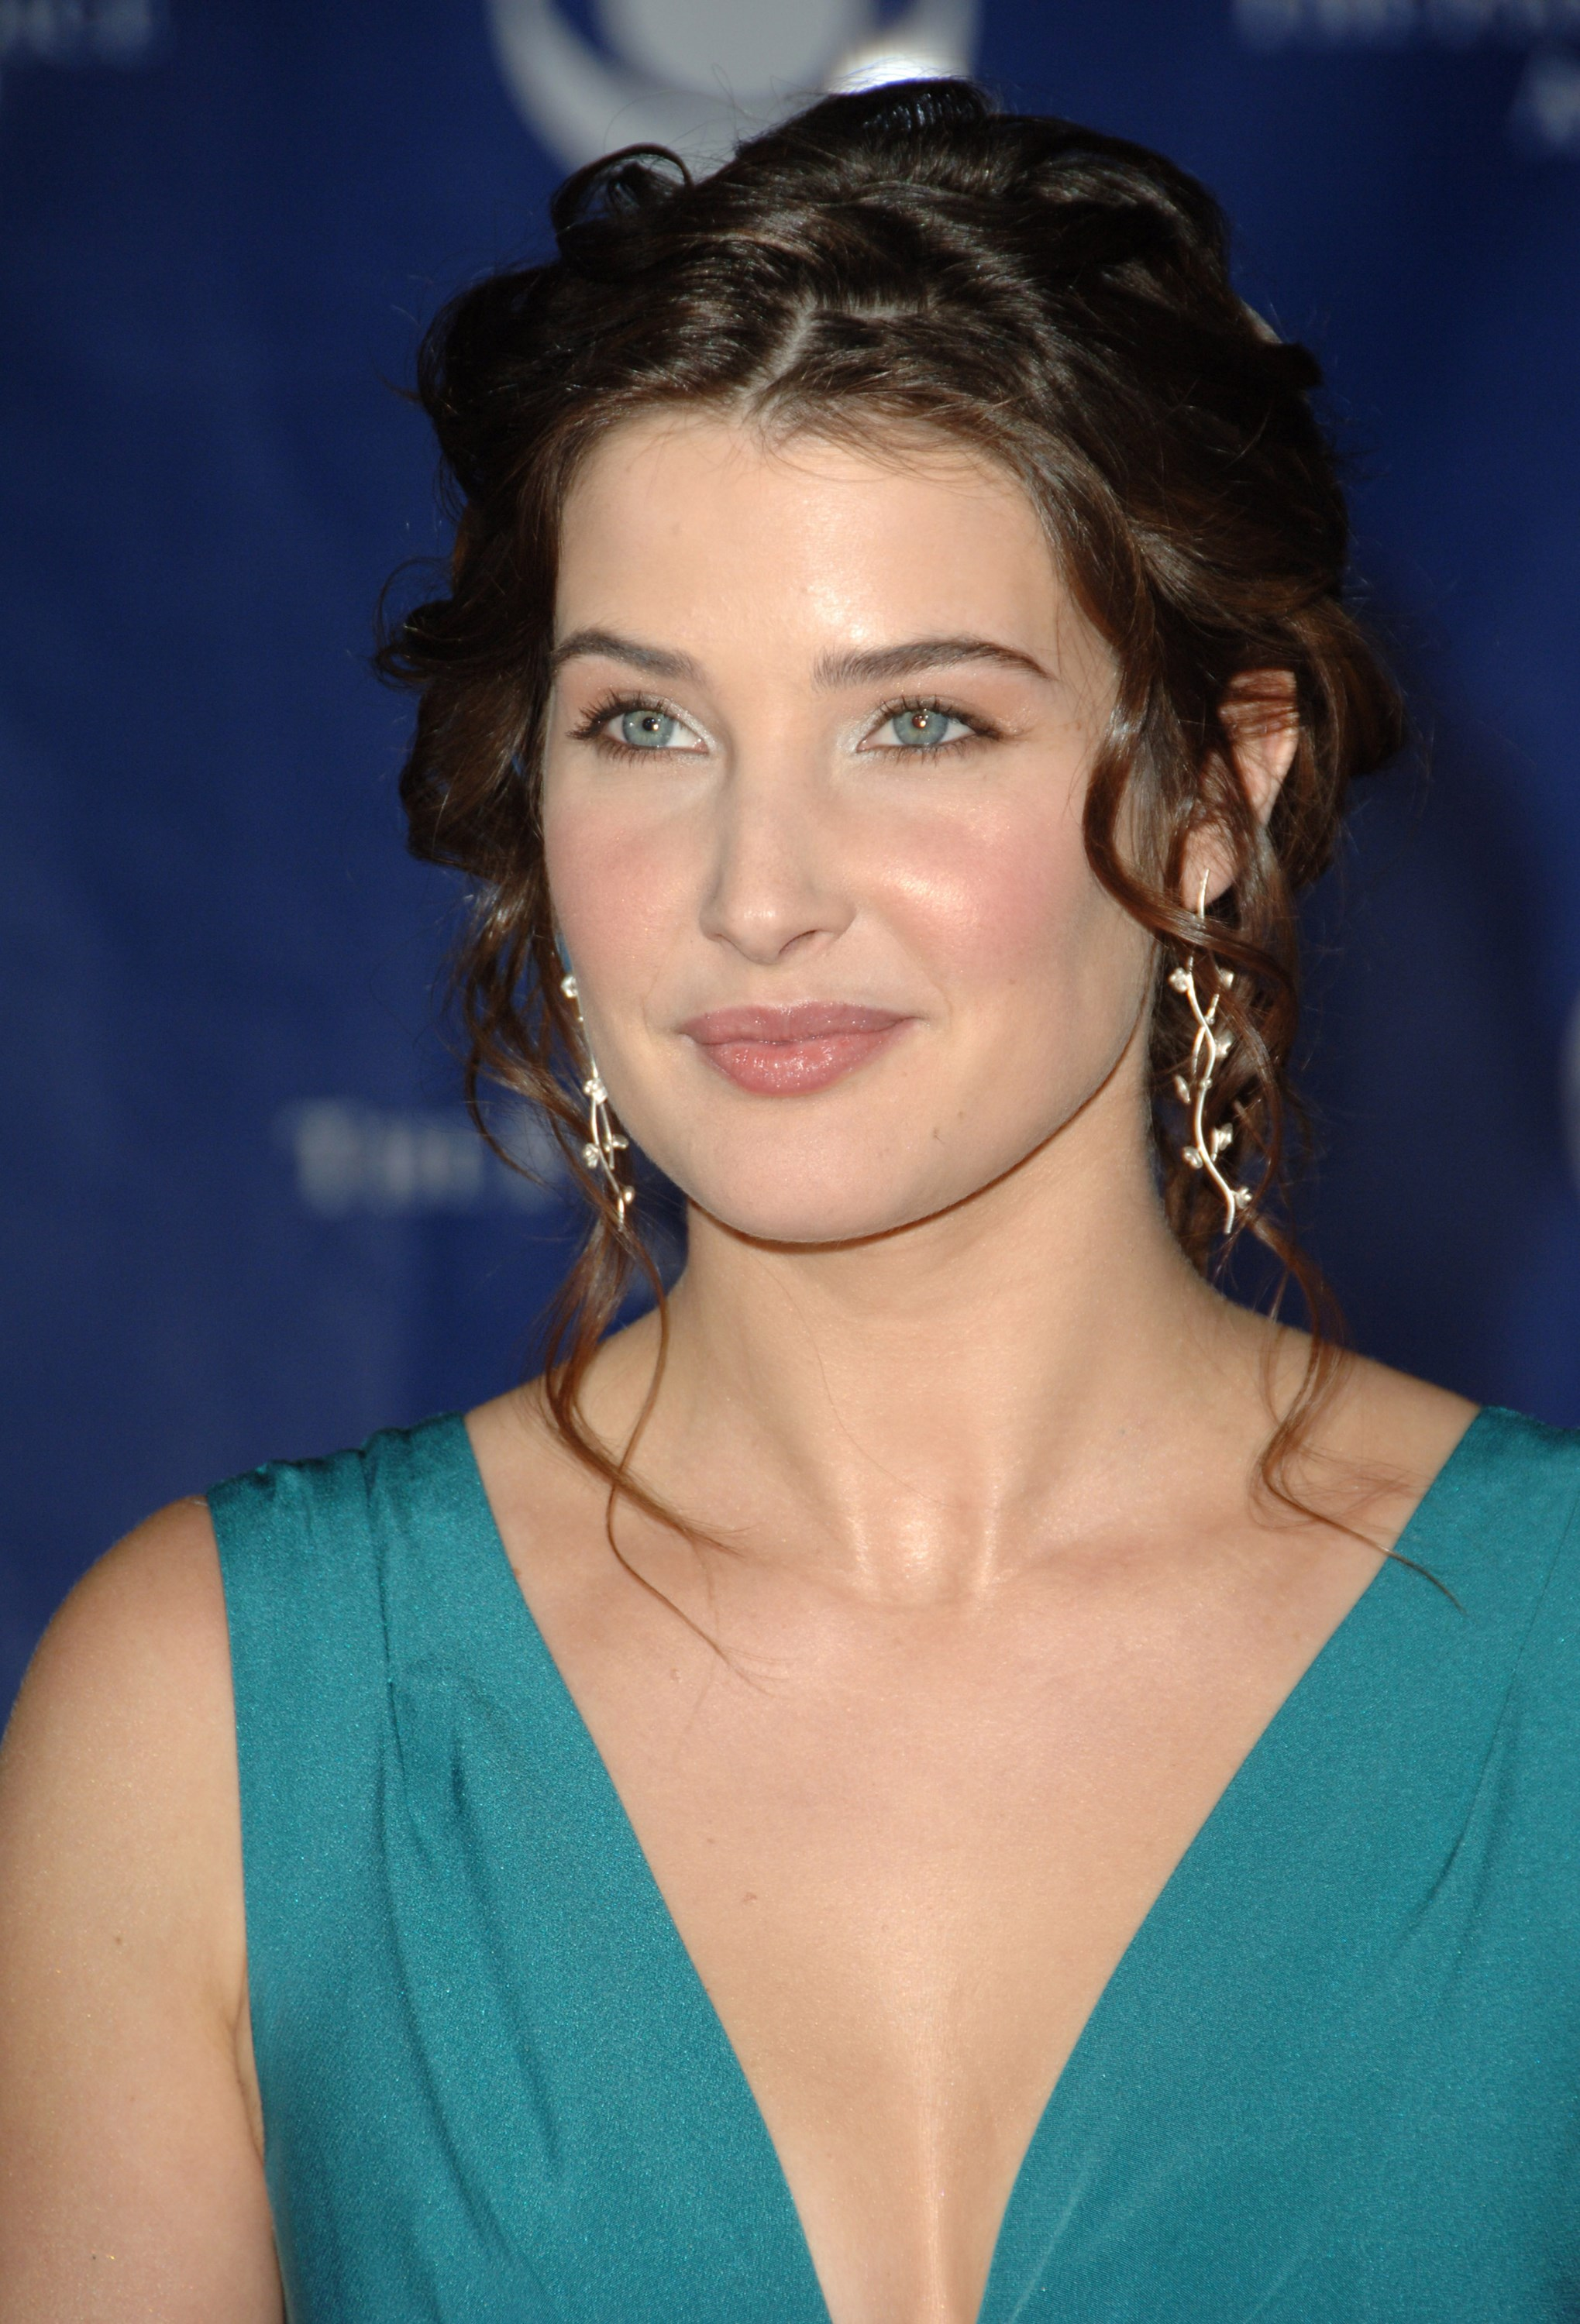 Cobie Smulders nudes (35 photo), pictures Ass, Twitter, lingerie 2019